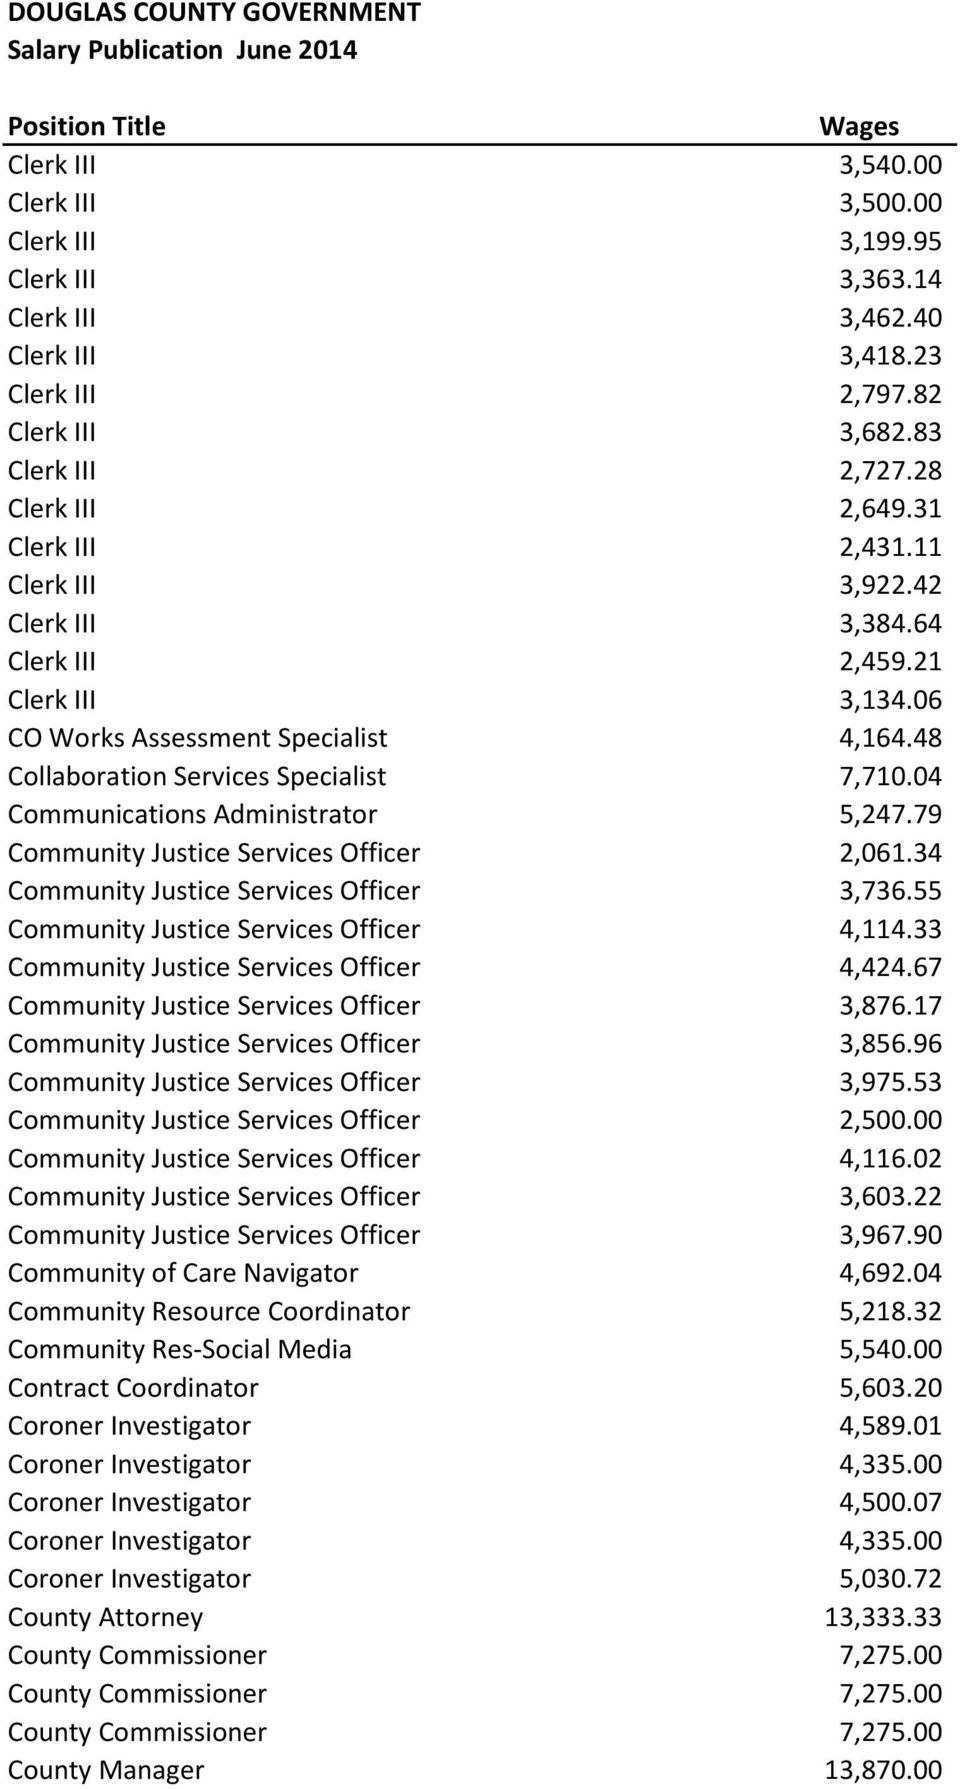 04 Communications Administrator 5,247.79 Community Justice Services Officer 2,061.34 Community Justice Services Officer 3,736.55 Community Justice Services Officer 4,114.